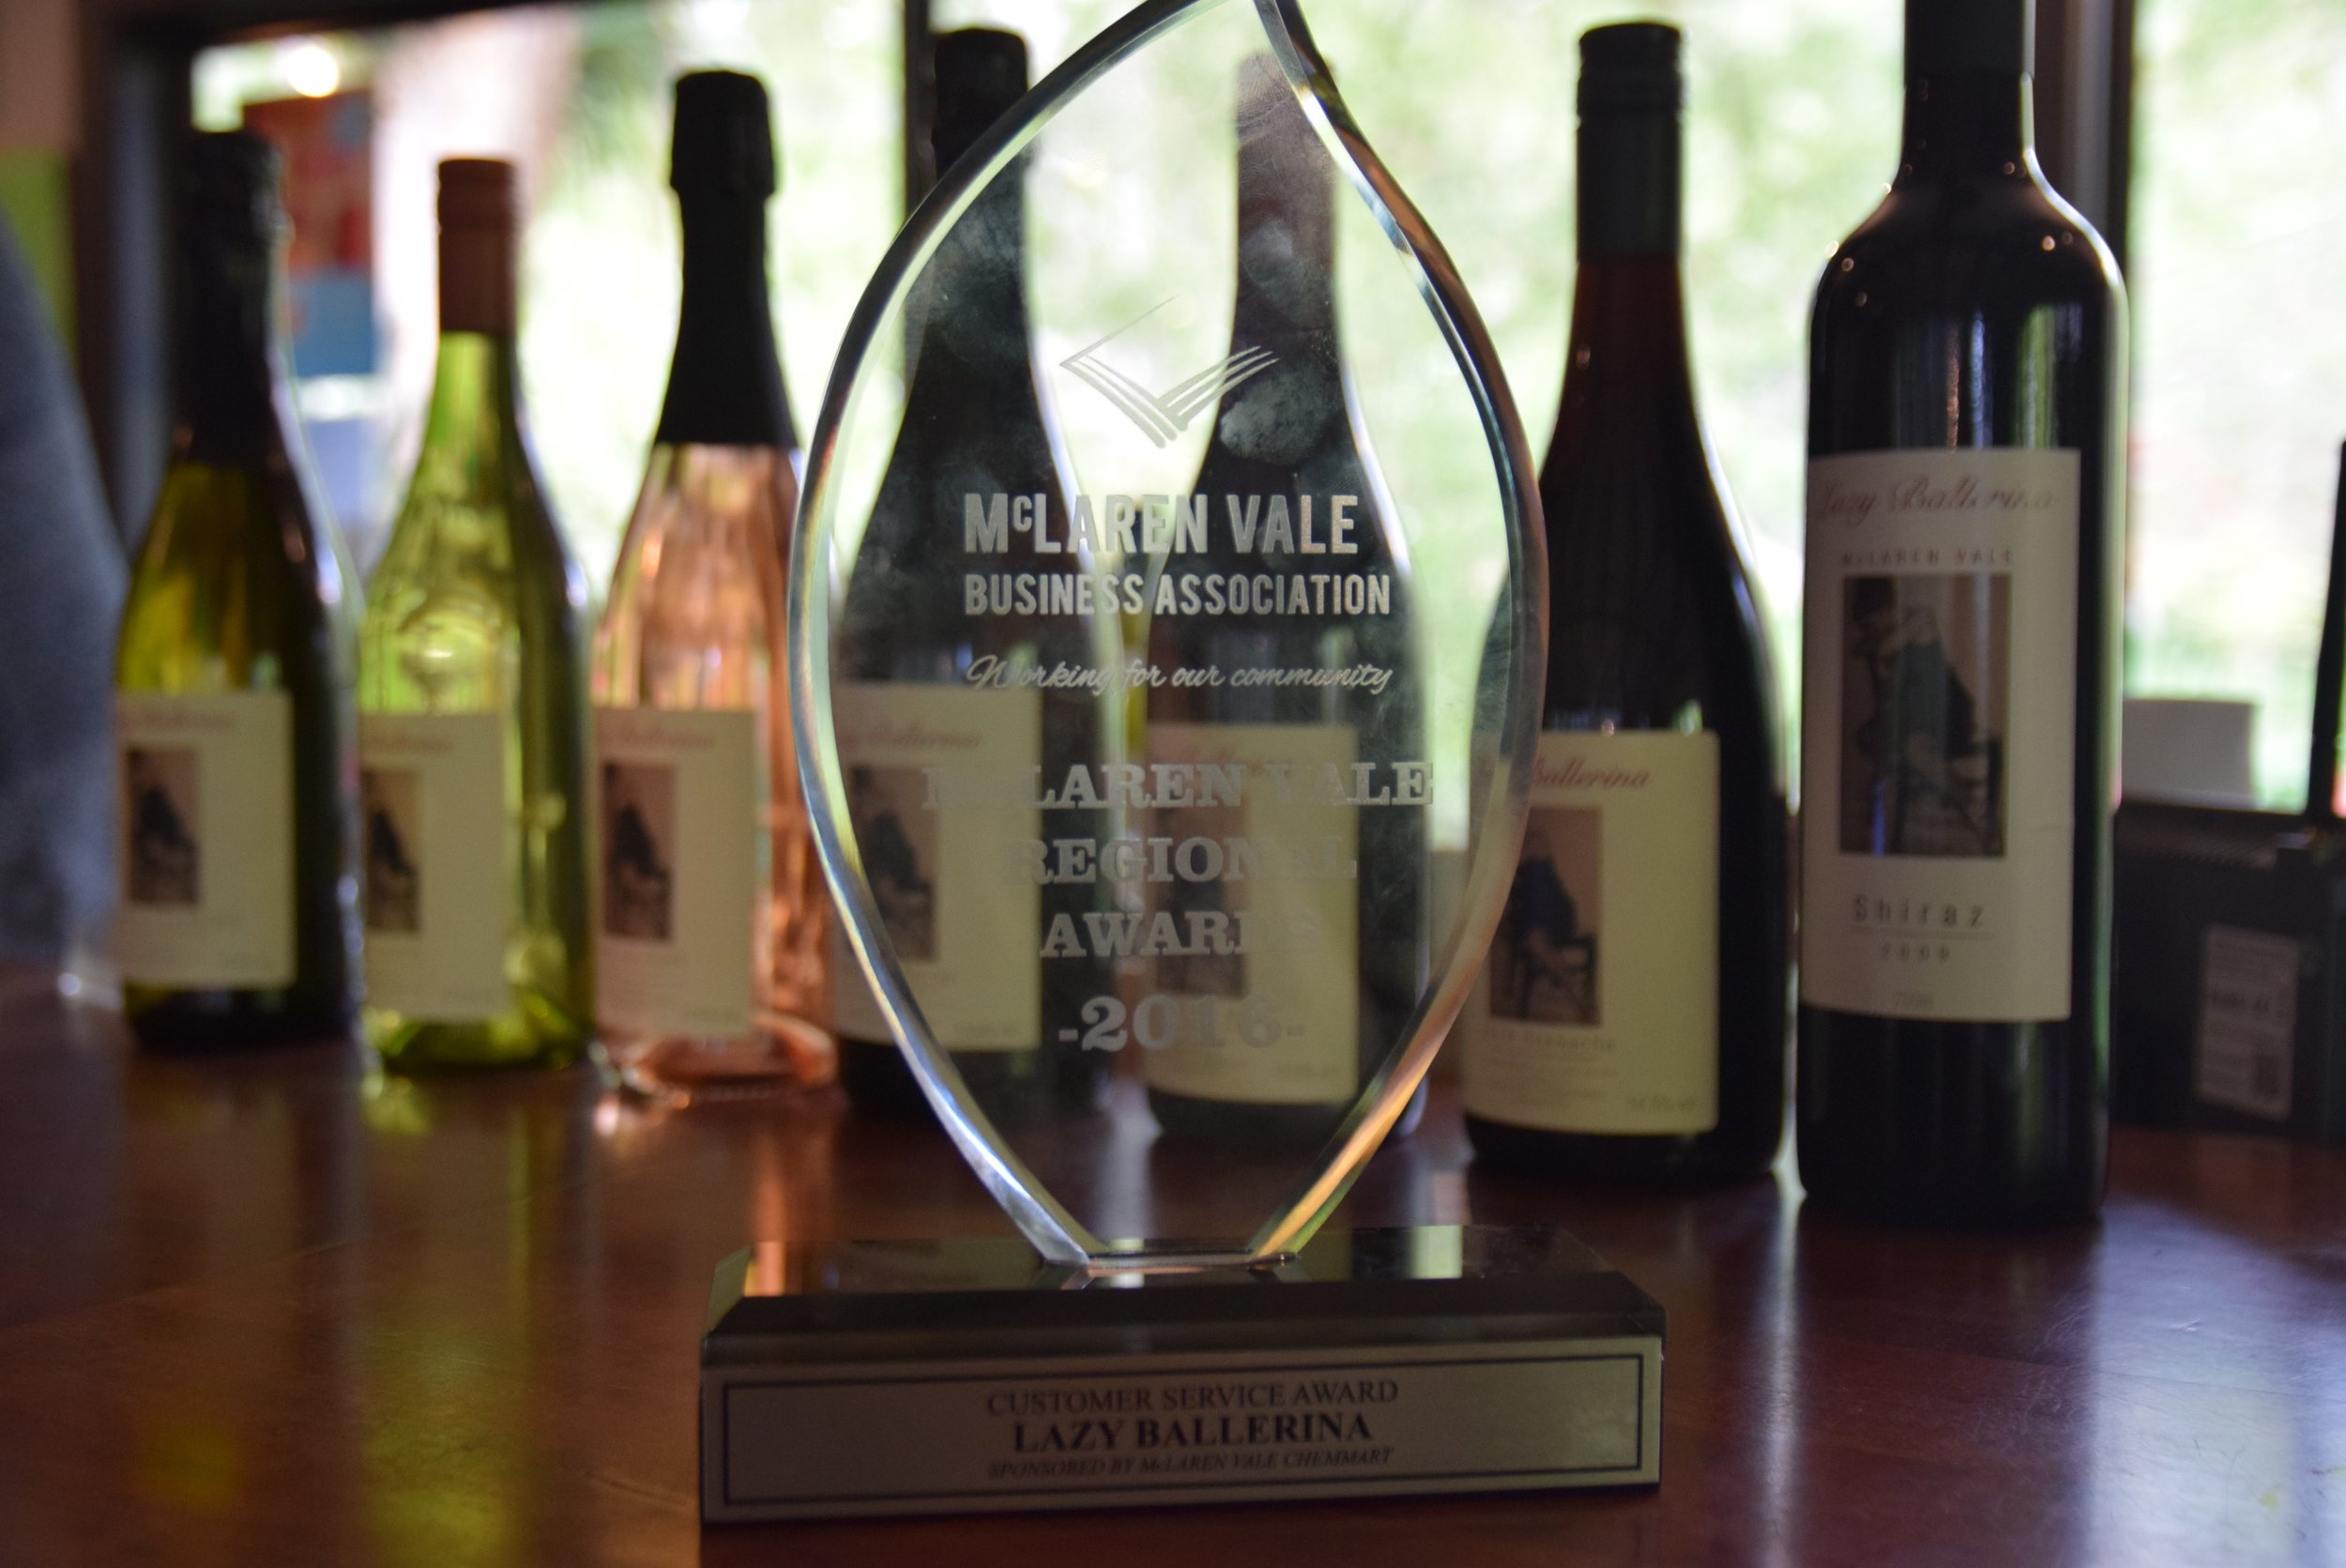 Thank you for your support!   Customer Service sponsored by McLaren Vale Chemmart   Winner – Lazy Ballerina